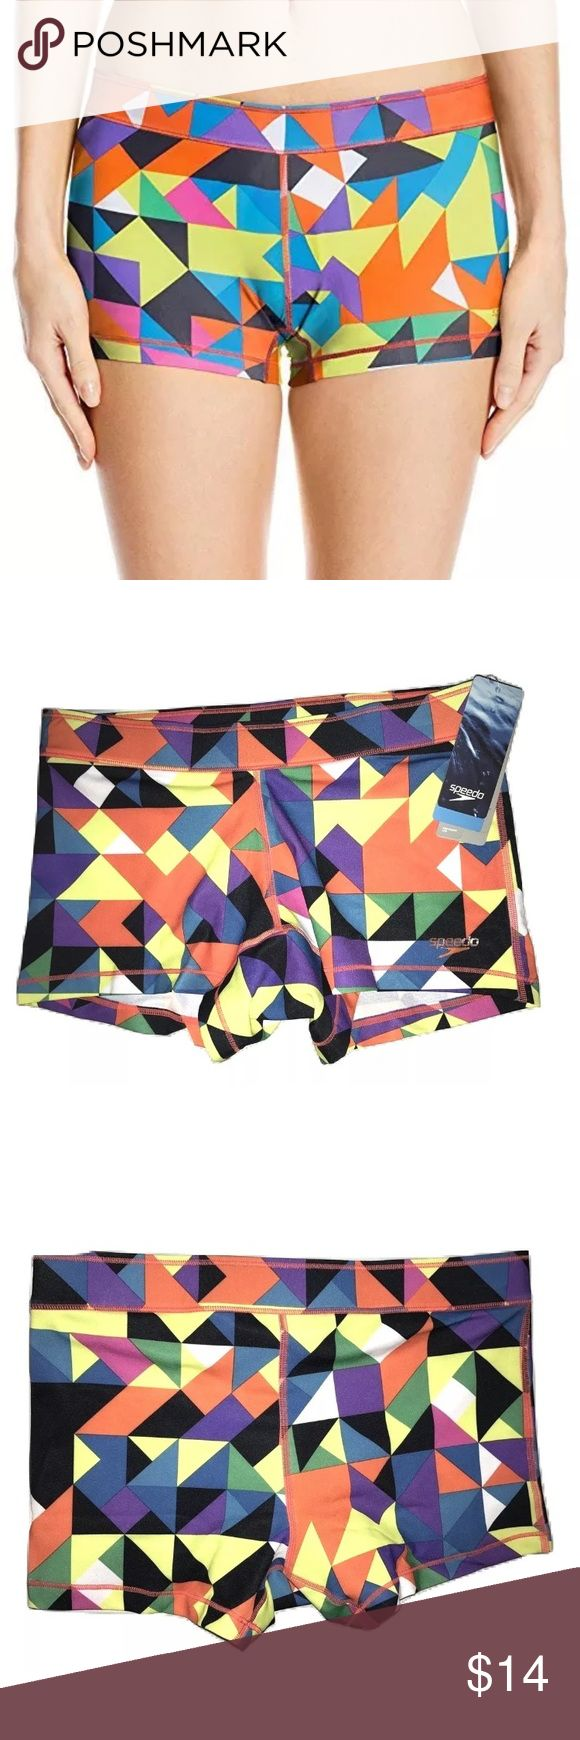 Speedo Swim Shorts Bottoms Speedo Endurance Lite Women's Swim Shorts Bottoms Size Small   New with tags - price on tag is $24   I try my very best to capture the correct shade of the color.  The actual shade may vary in person.  Endurance Lite - Chlorine resistant, retains color and dries quickly.  Lighter weight and greater stretch than Endurance + 51% Polyester PBT, 49% Polyester   Thank you so much! Speedo Swim